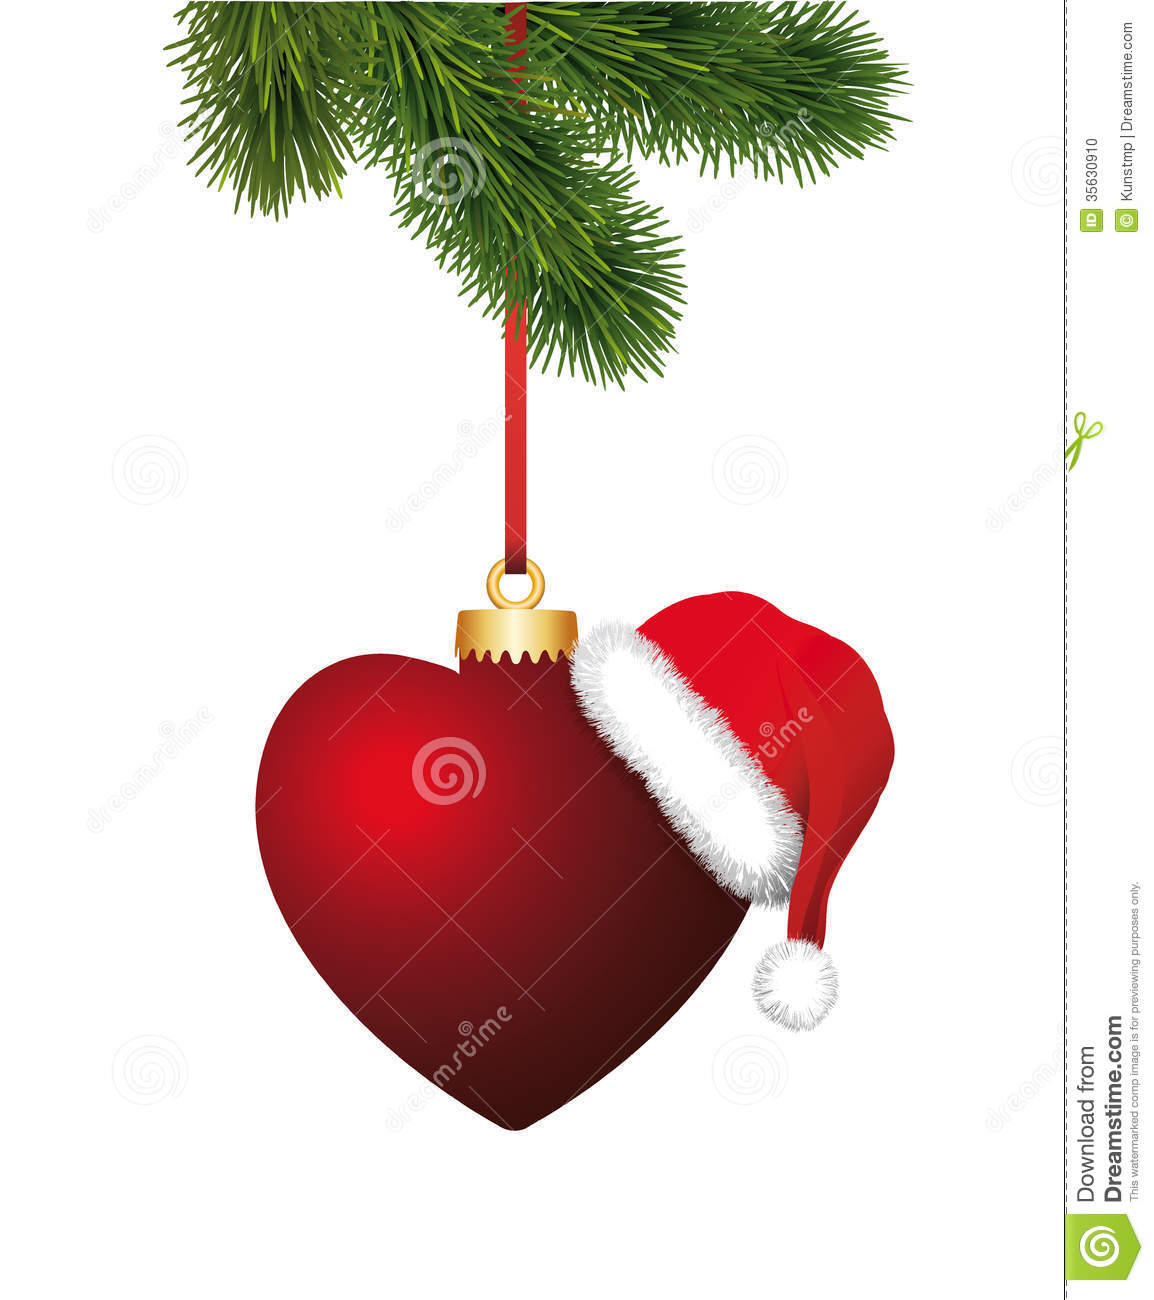 christmas love heart pictures